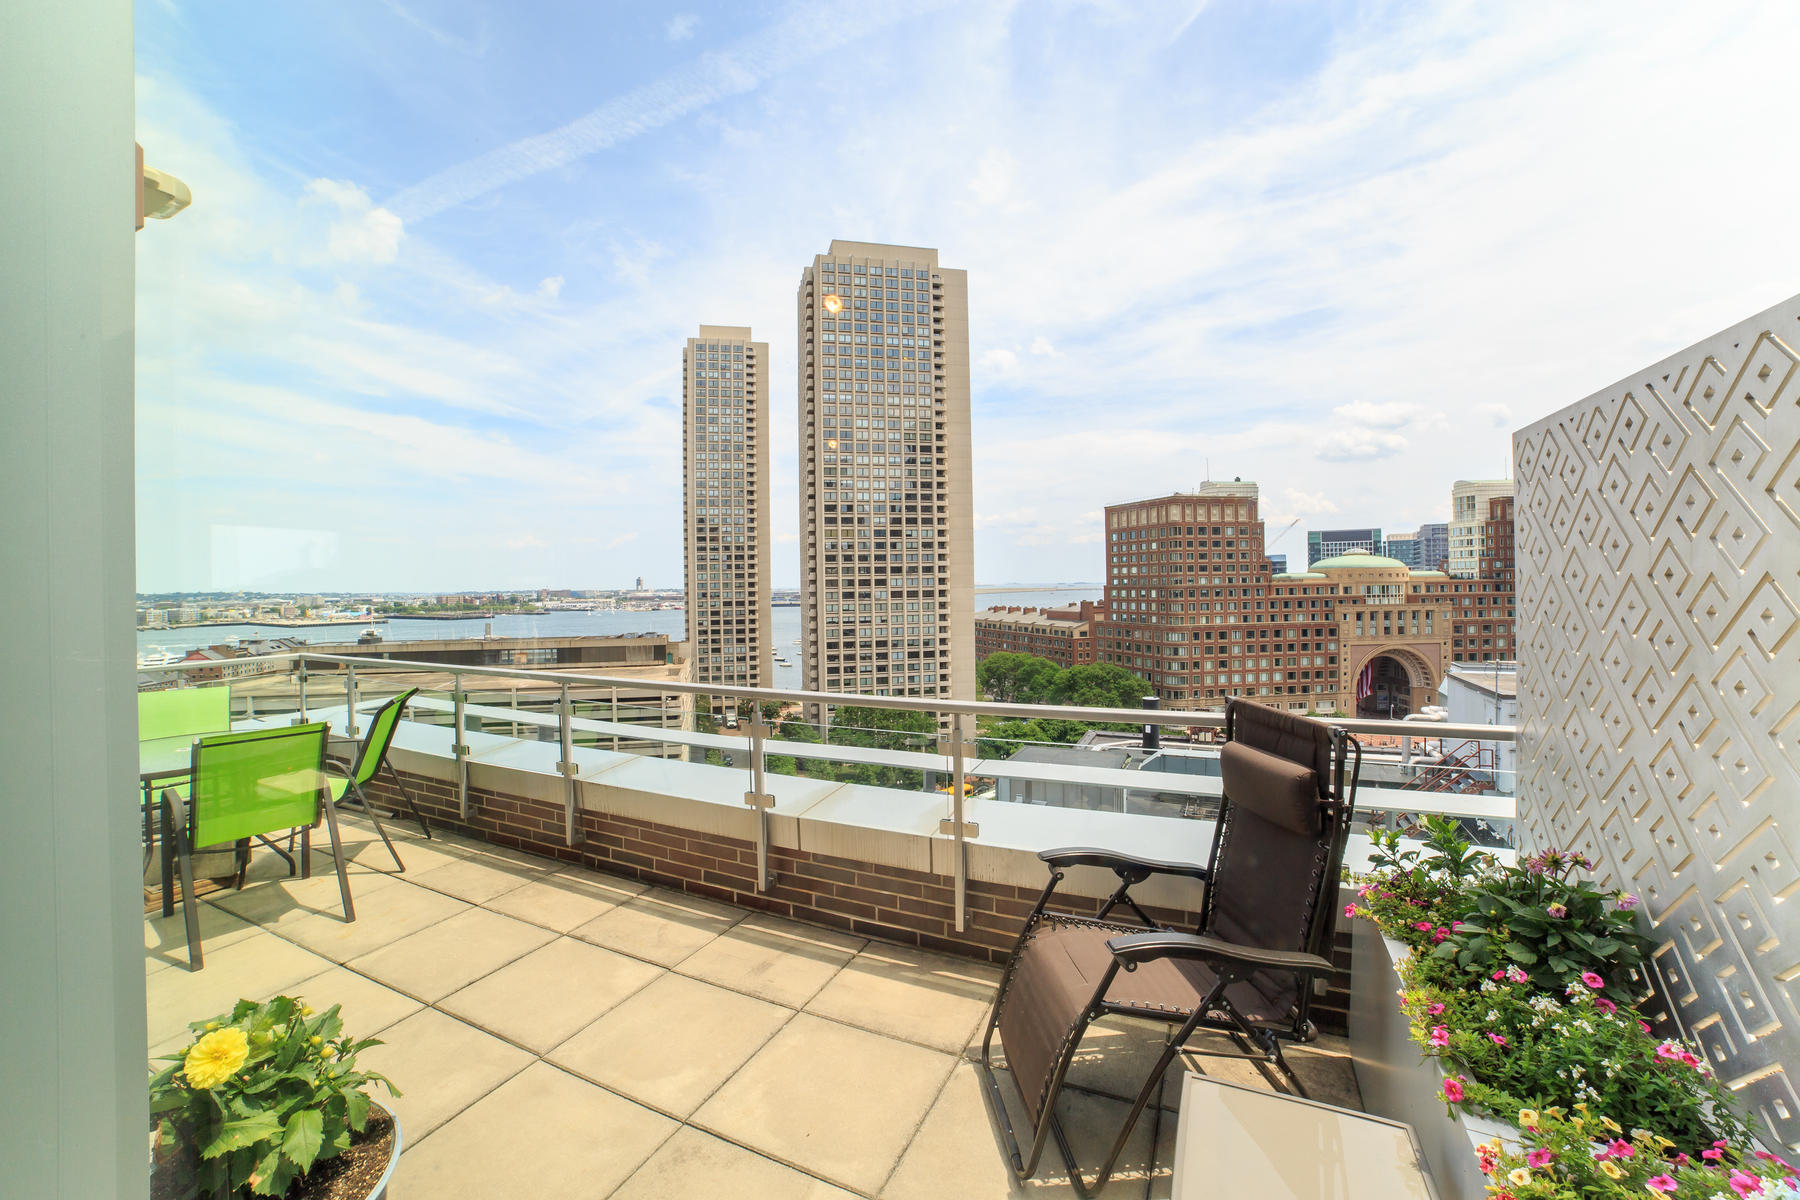 Condominium for Sale at One Of A Kind Penthouse 80 Broad Street Unit PH 1403 Waterfront, Boston, Massachusetts, 02110 United States